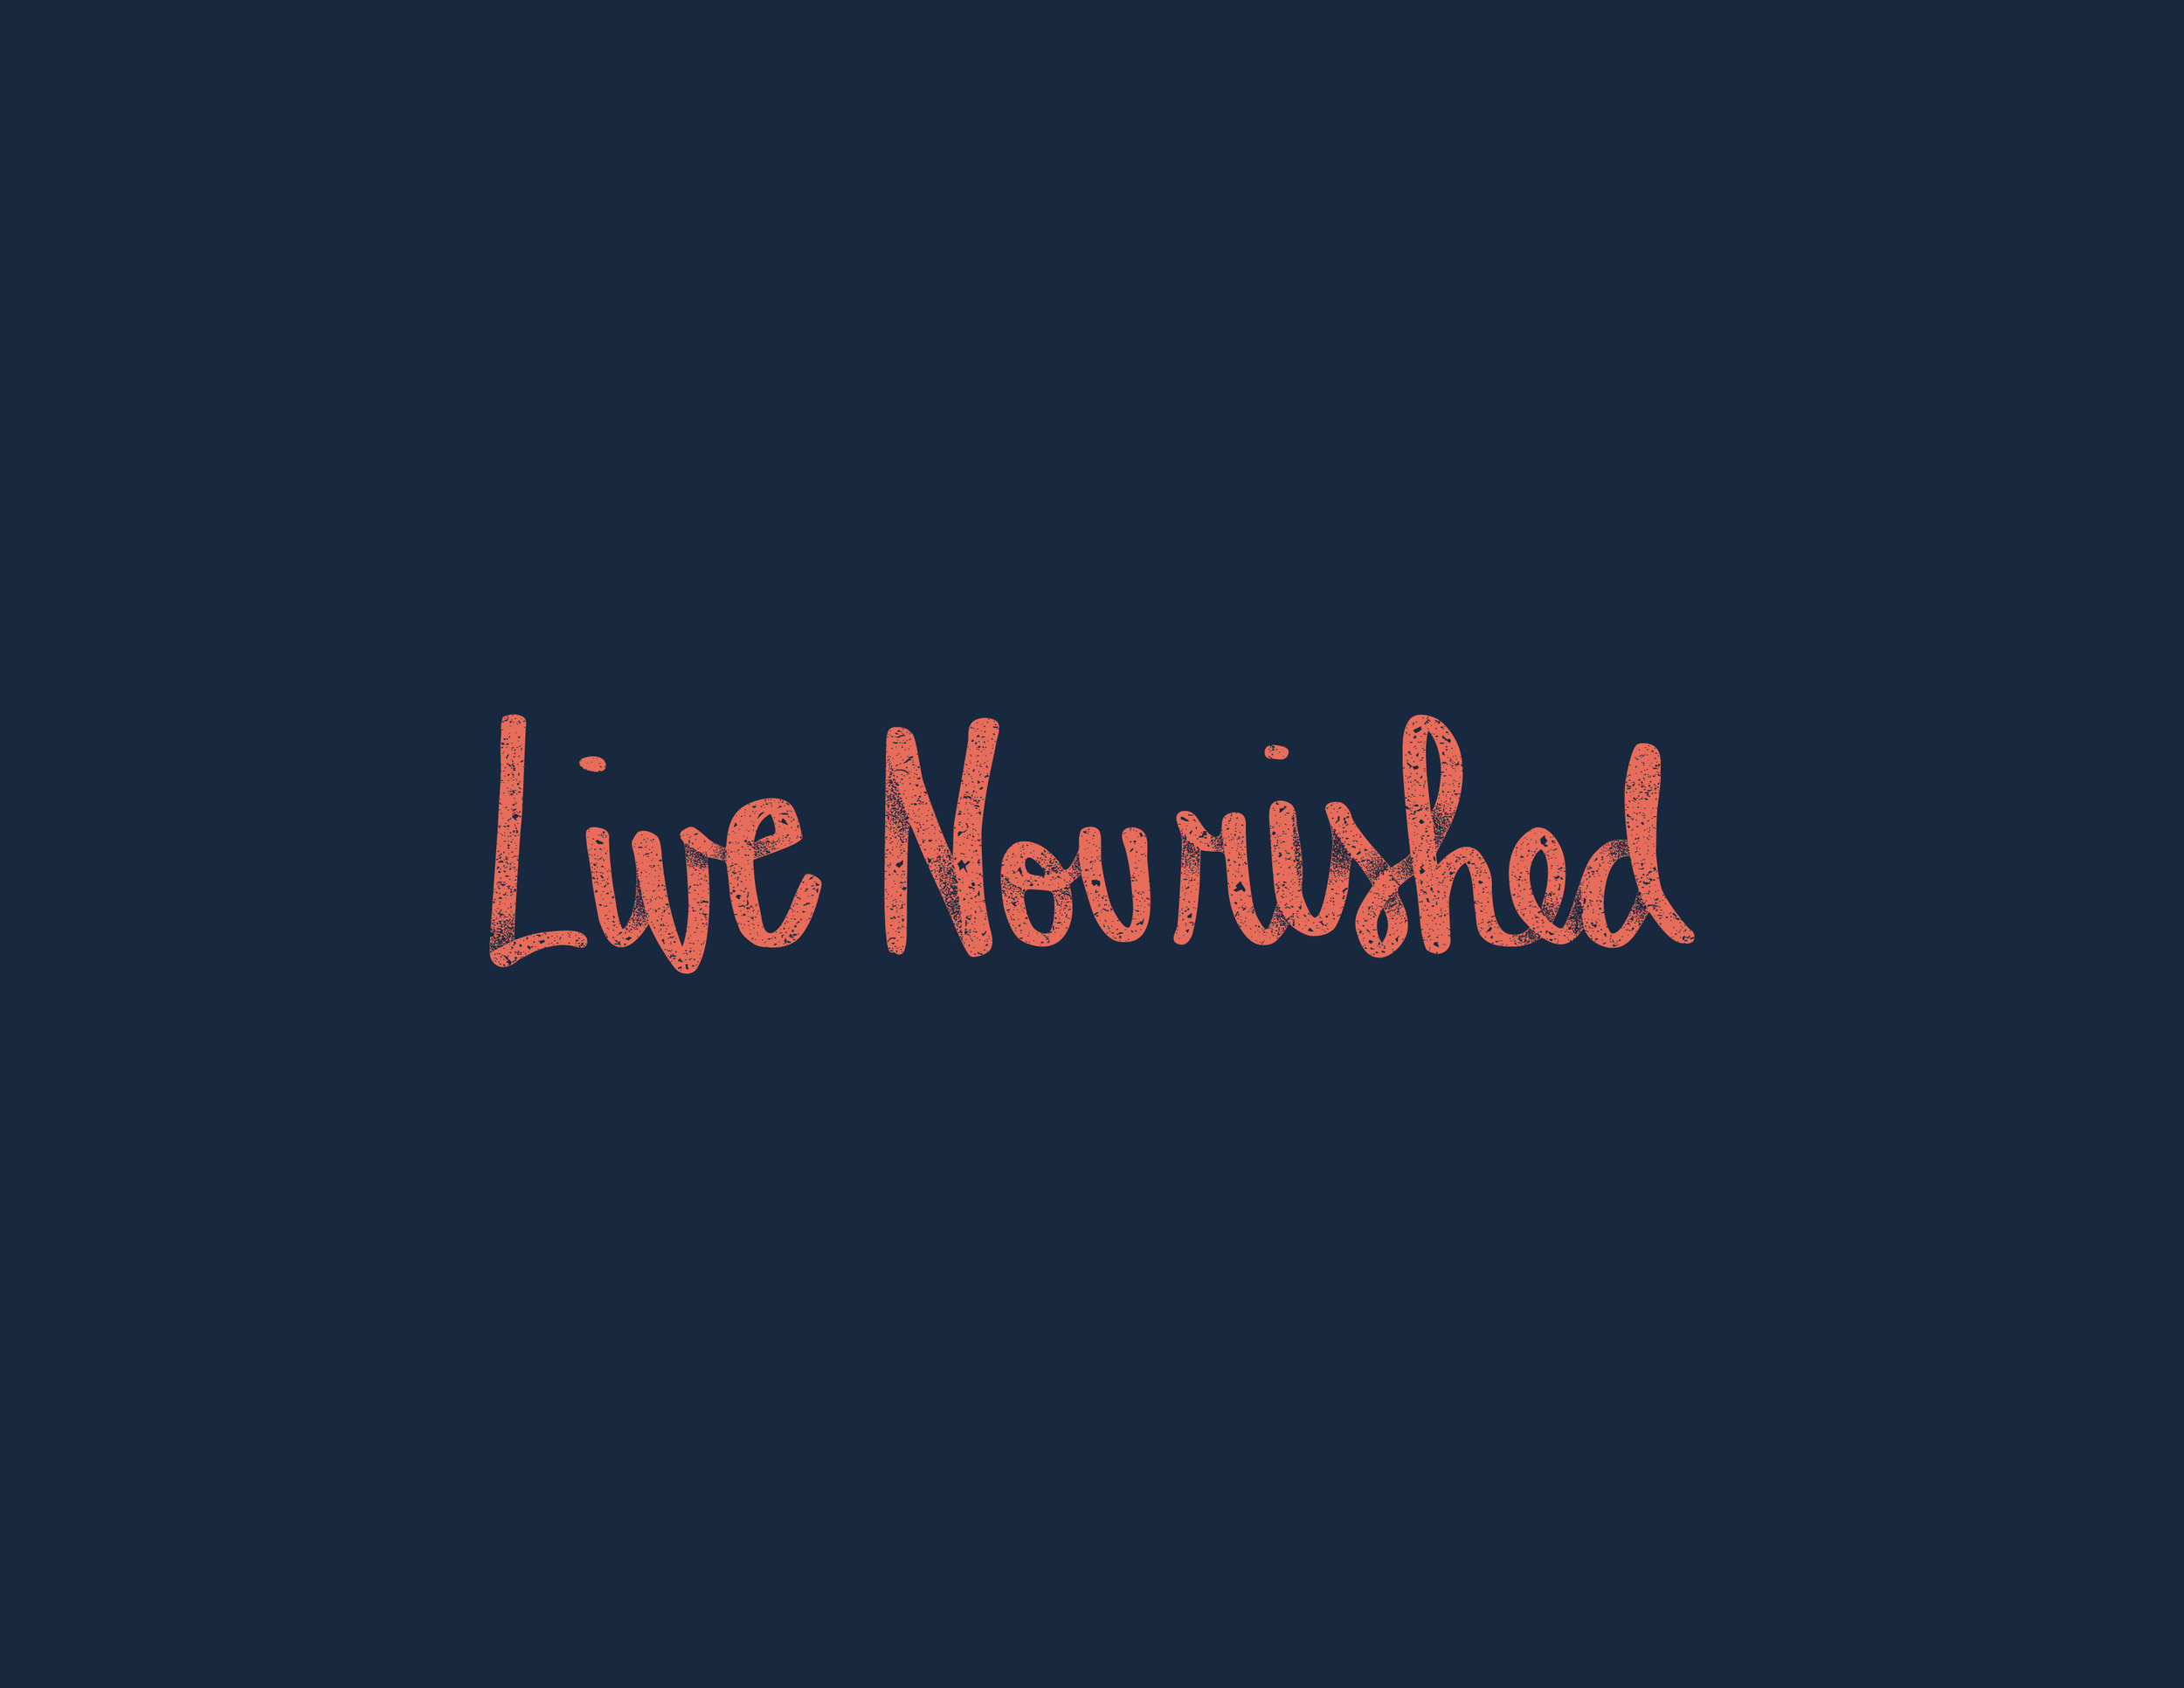 LIVE_NOURISHED-logo-orange_on_blue-07.jpg